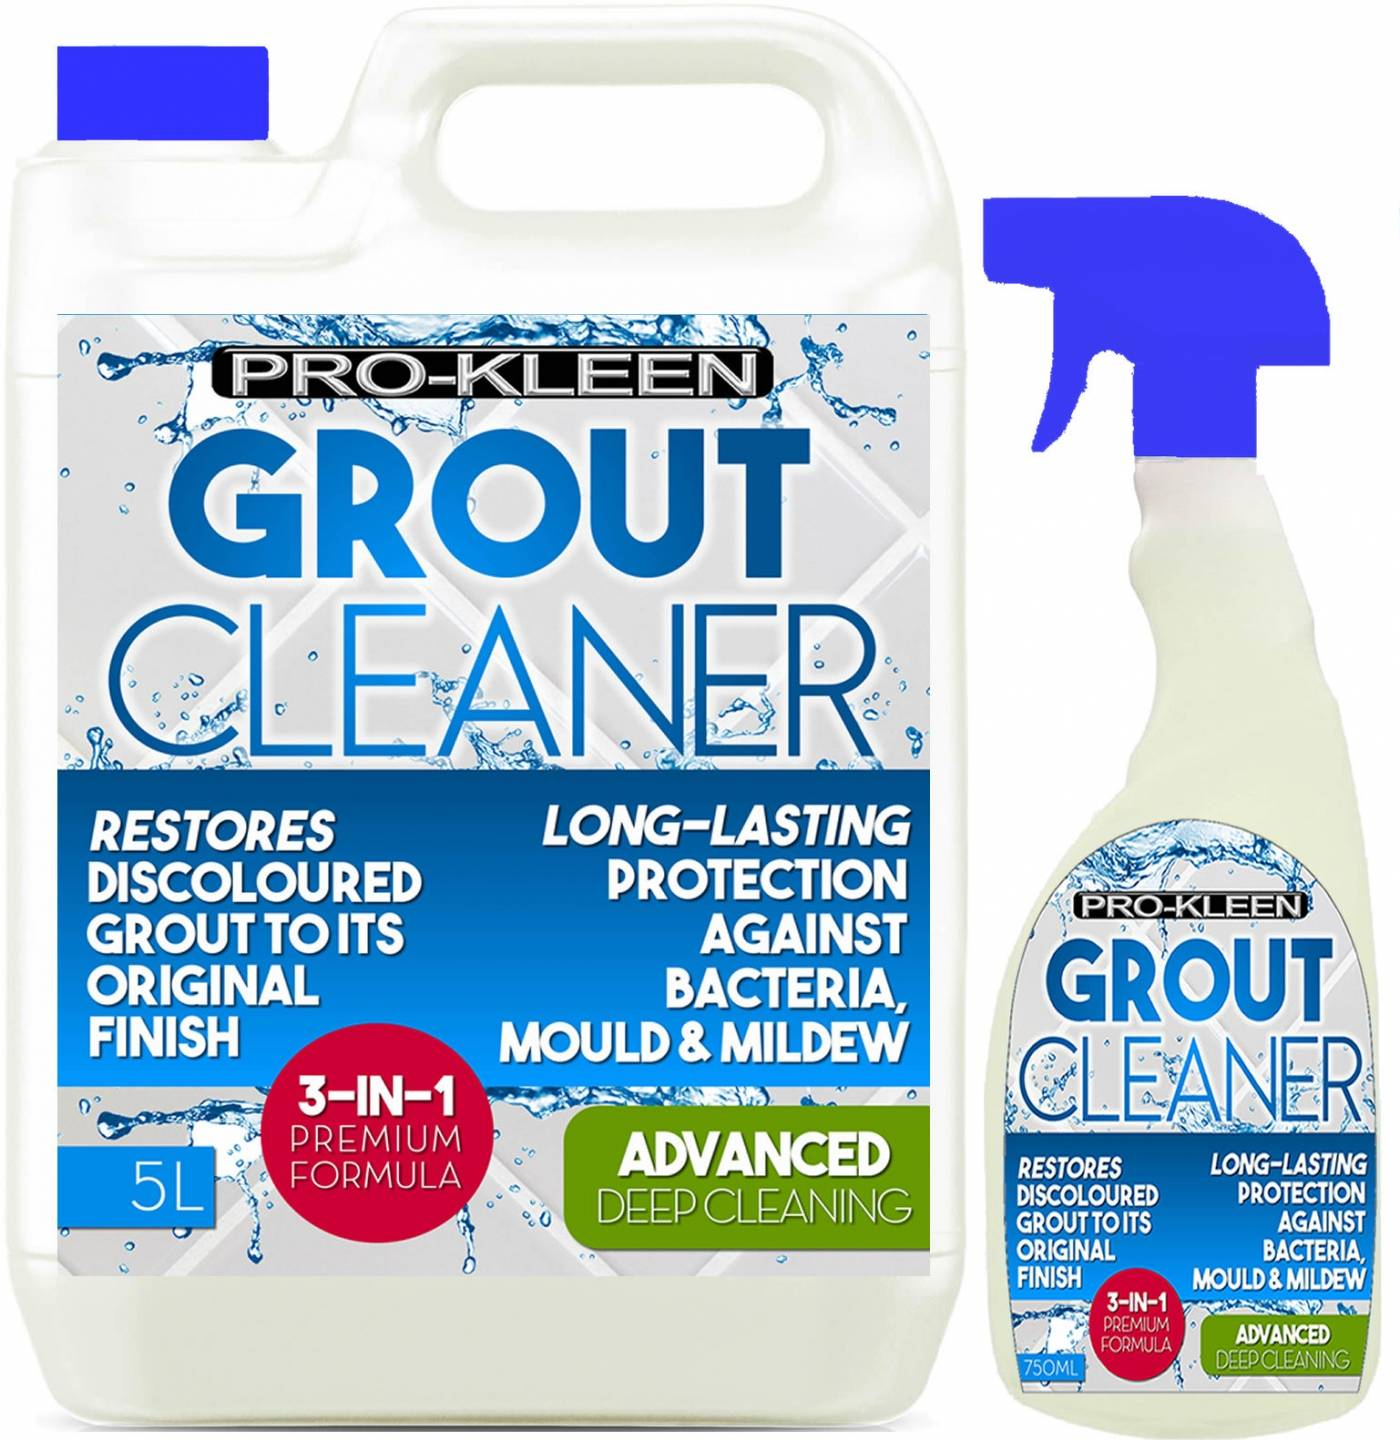 pro kleen grout cleaner